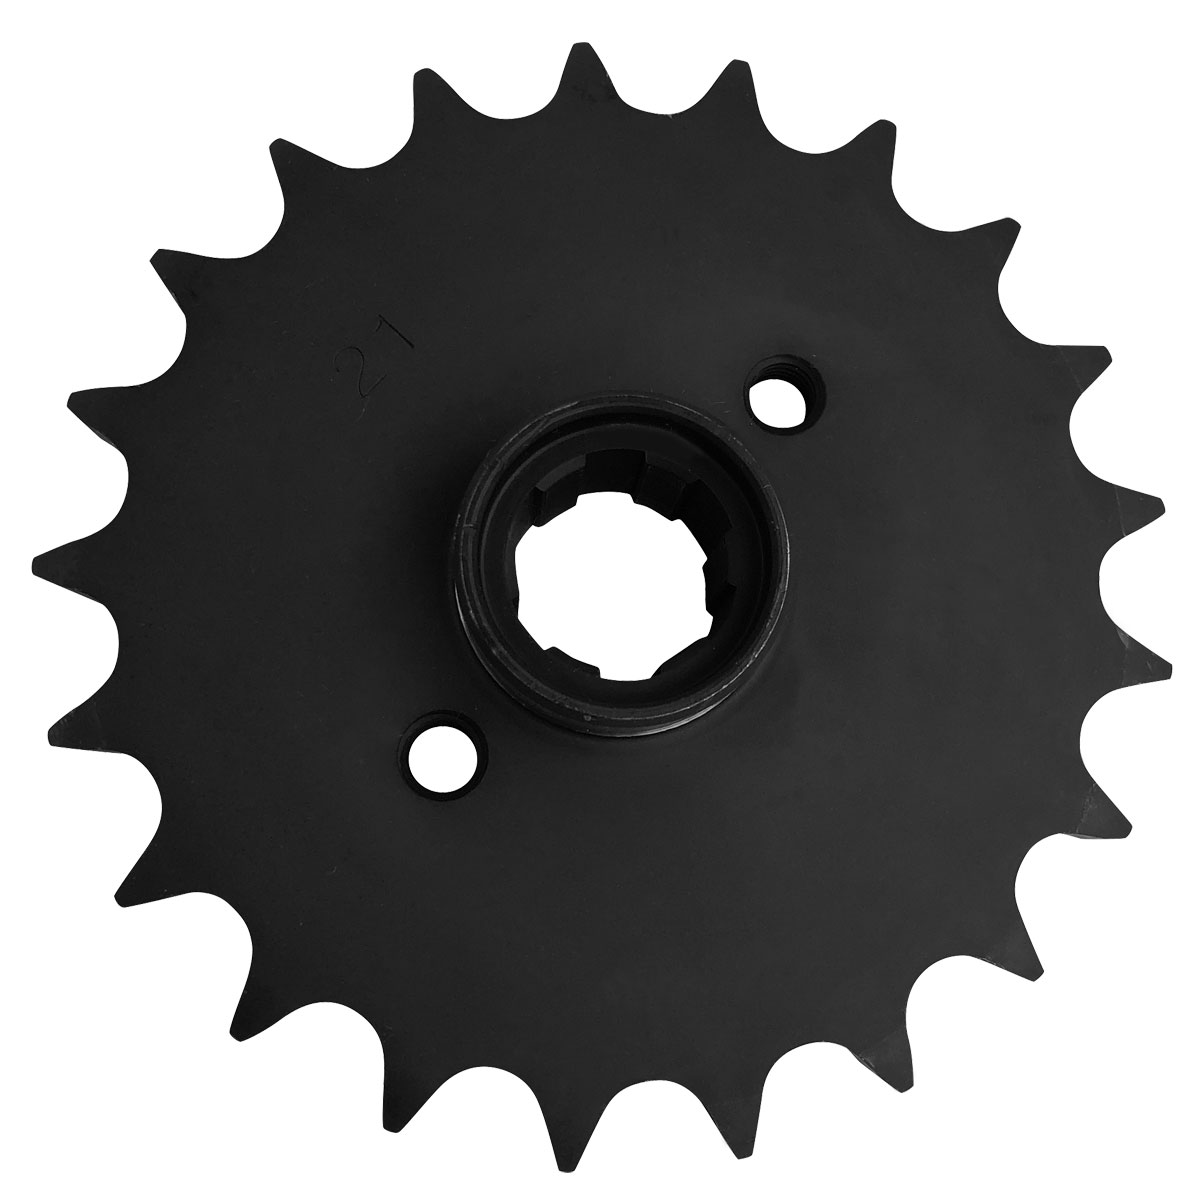 J&P Cycles® 21 Tooth Heavy-Duty Transmission Sprocket